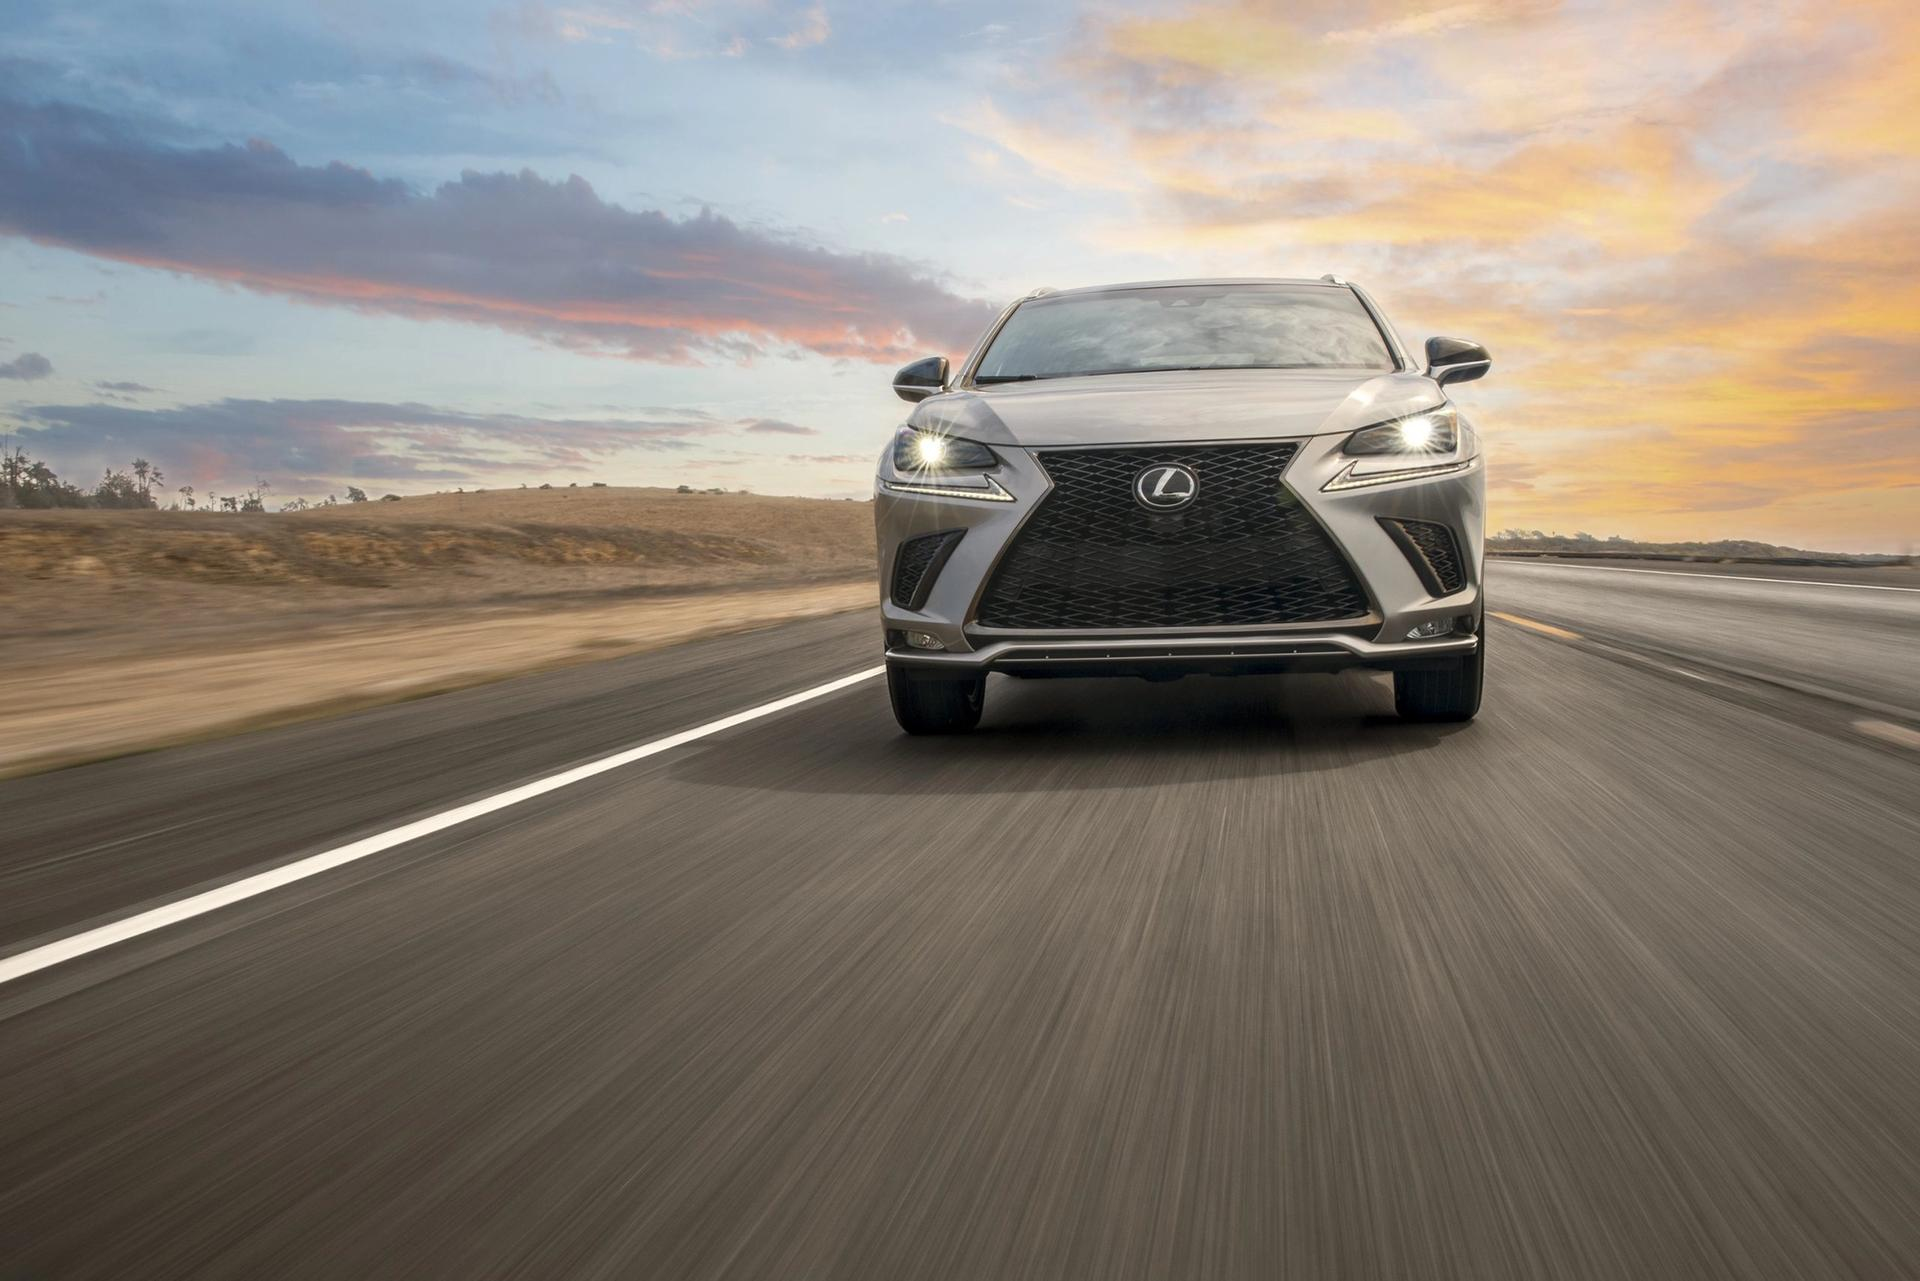 Lexus NX driving on the road